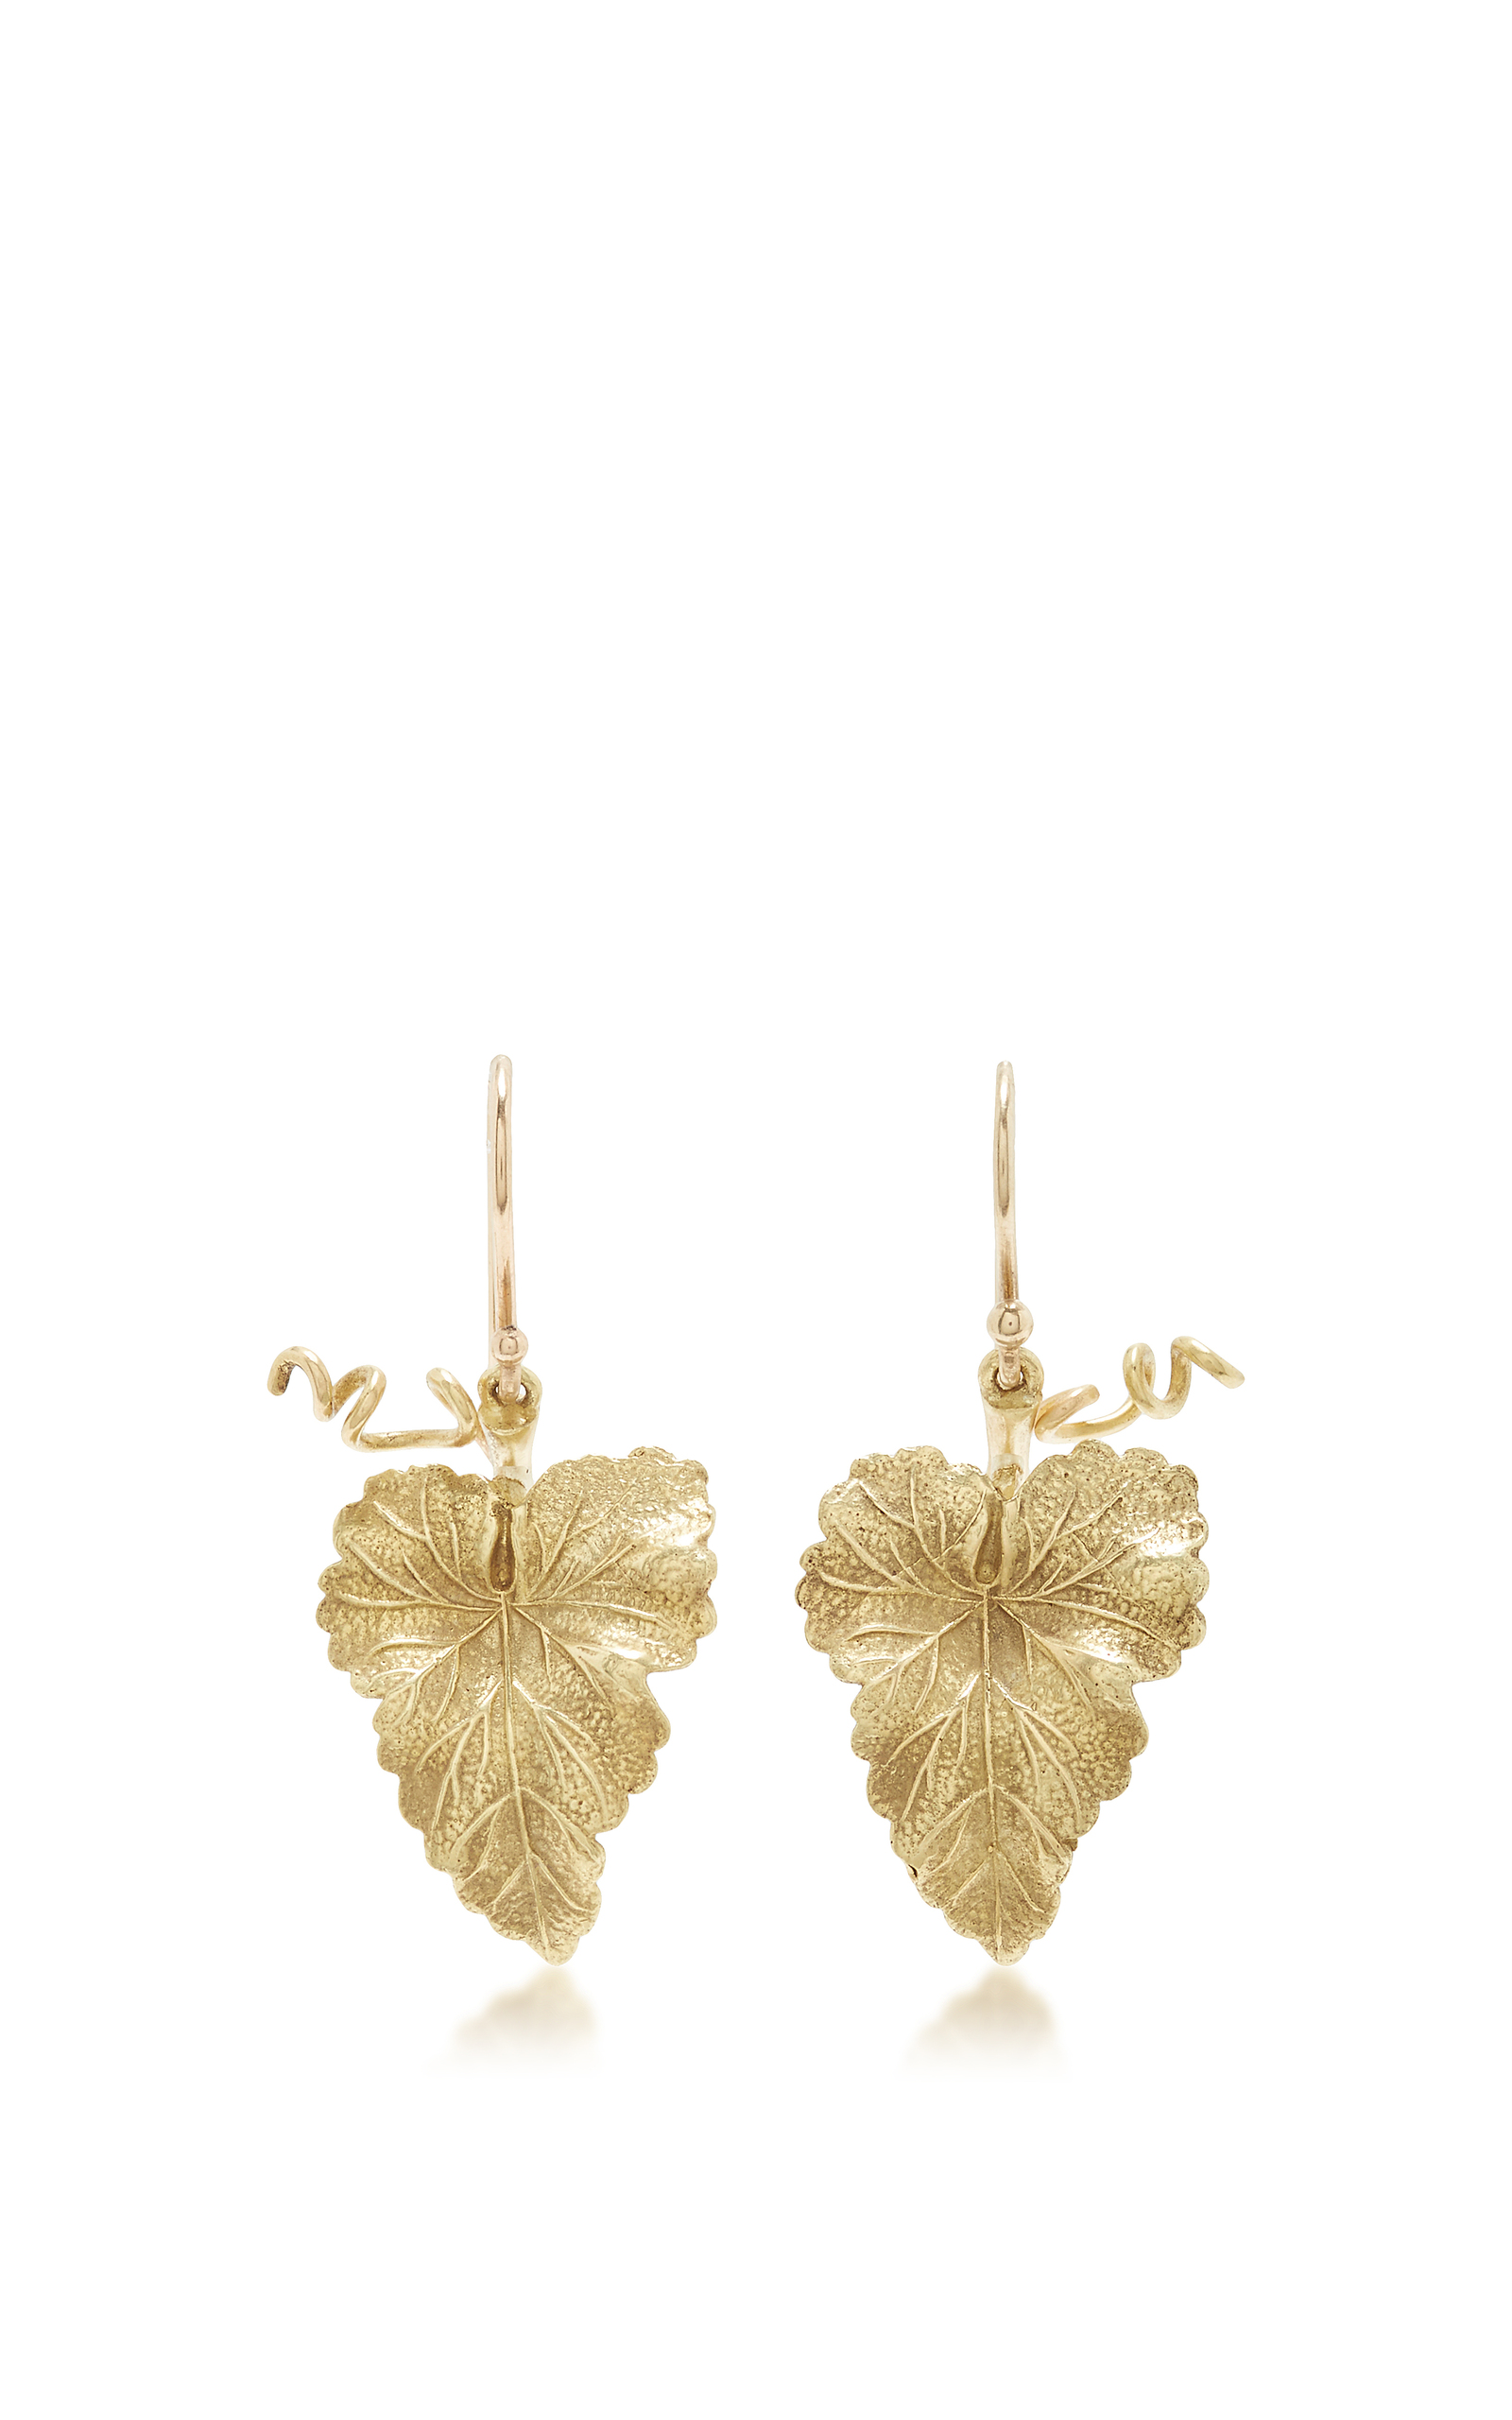 operandi ferdinandsen moda large daily annette gold grape hanging earrings wear leaf by loading